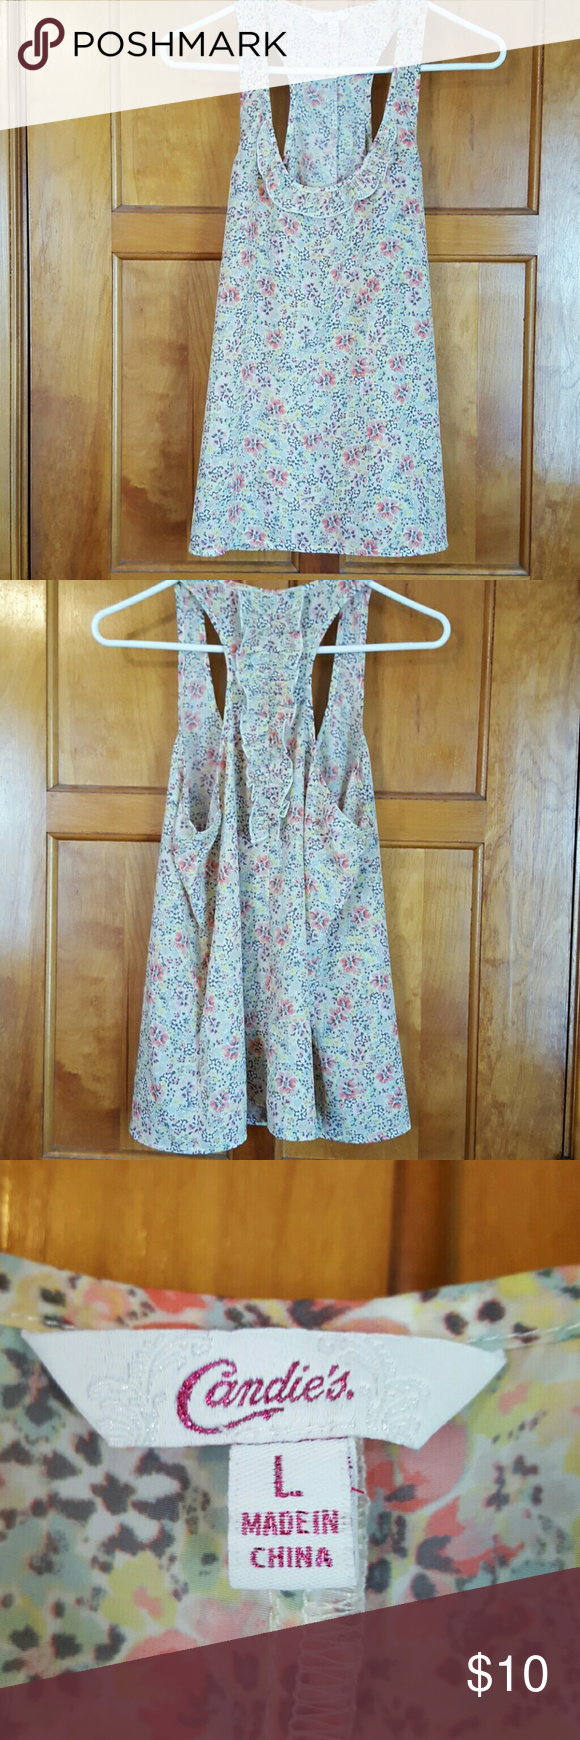 Candie's top sz L Pretty floral print,  ruffle up the center of the back, polyester Candie's Tops Blouses